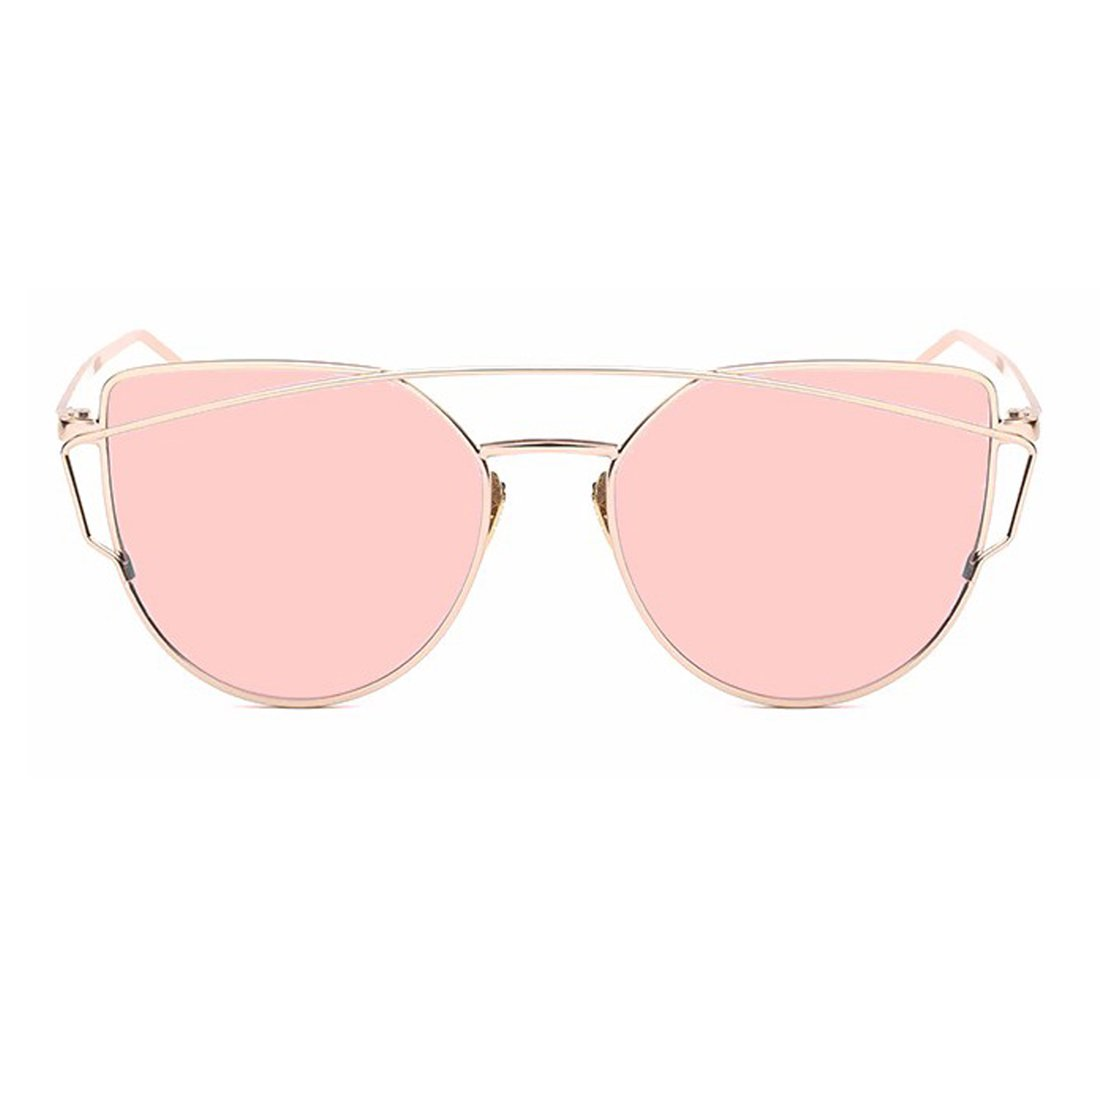 Mirrored Flat Lenses Fashion Metal Frame Women's Sunglasses